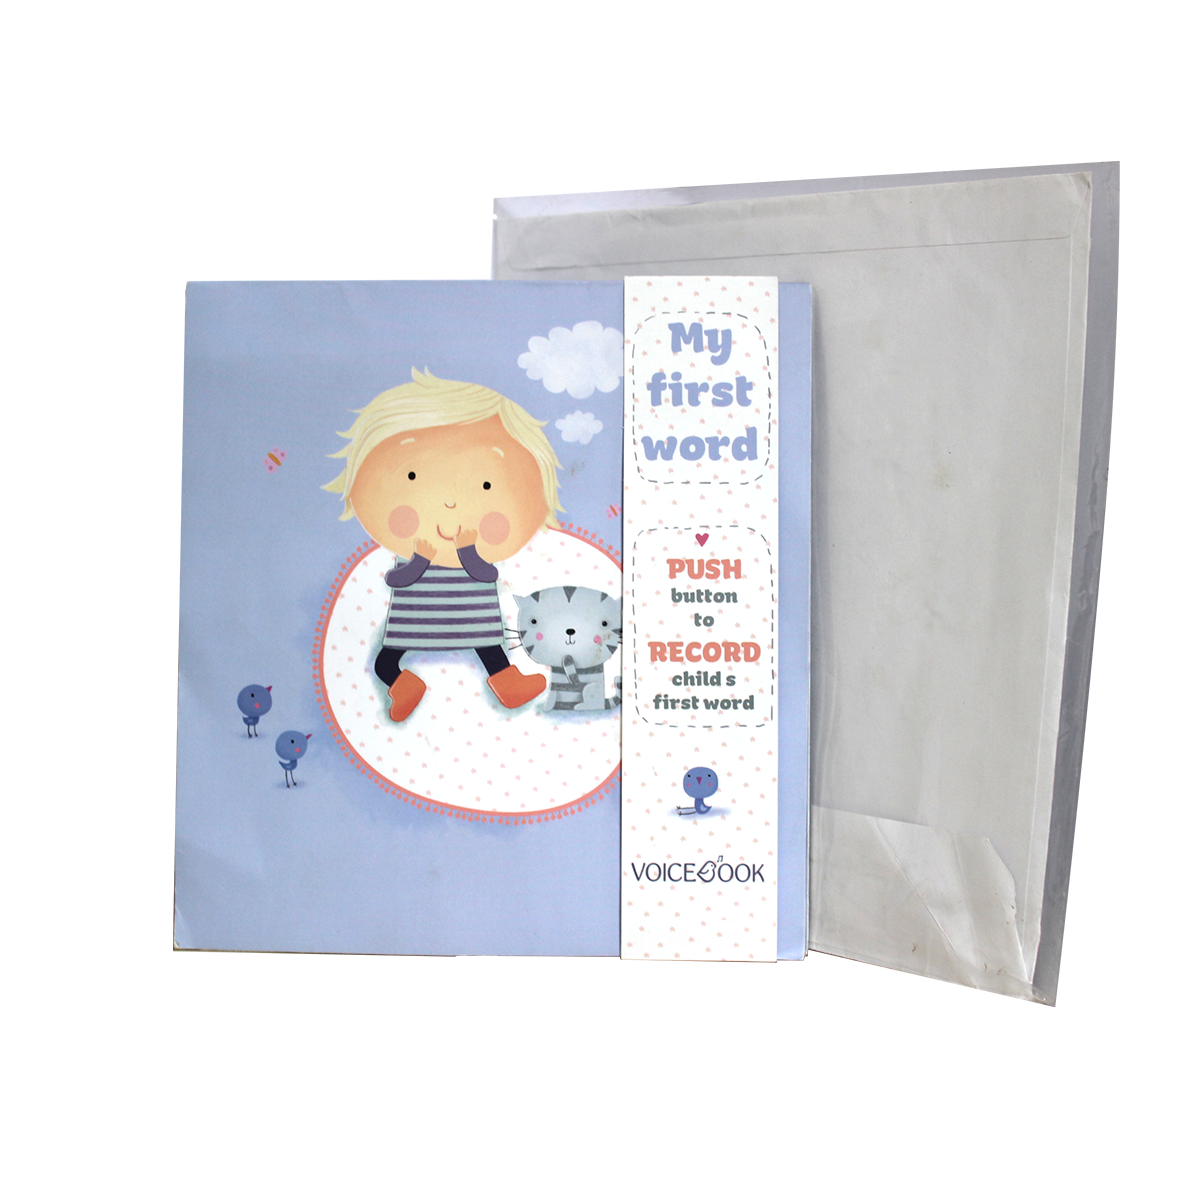 Recordable Voice Greeting Card